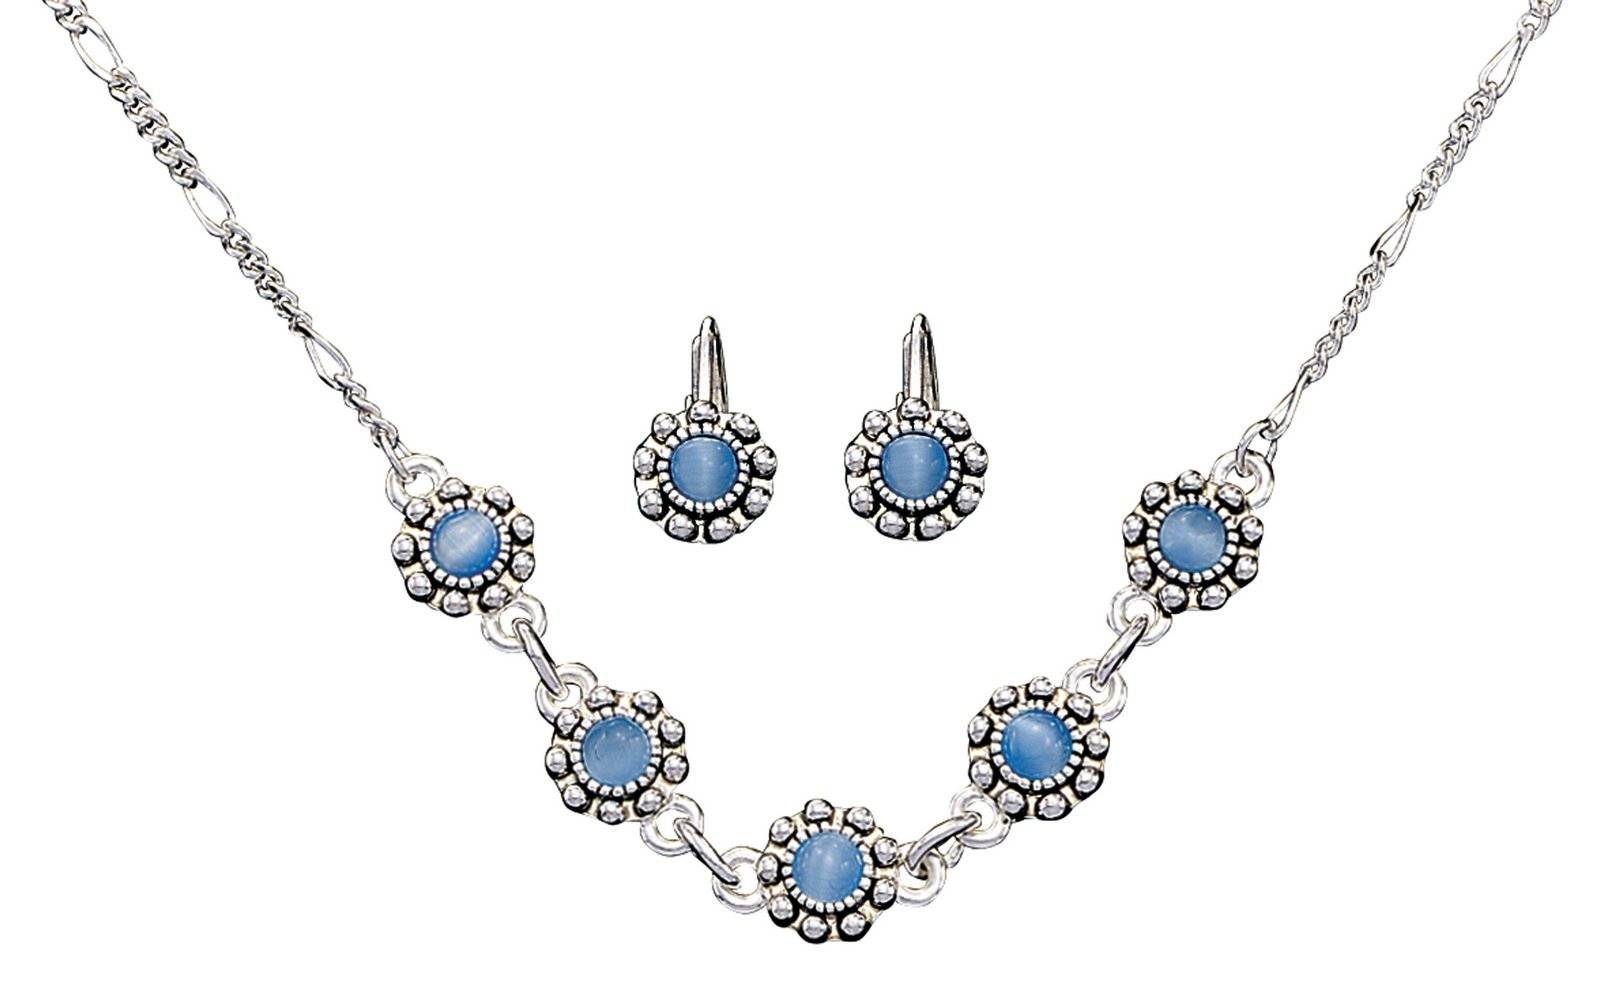 Montana Silversmiths Blue Flowers Jewelry Set